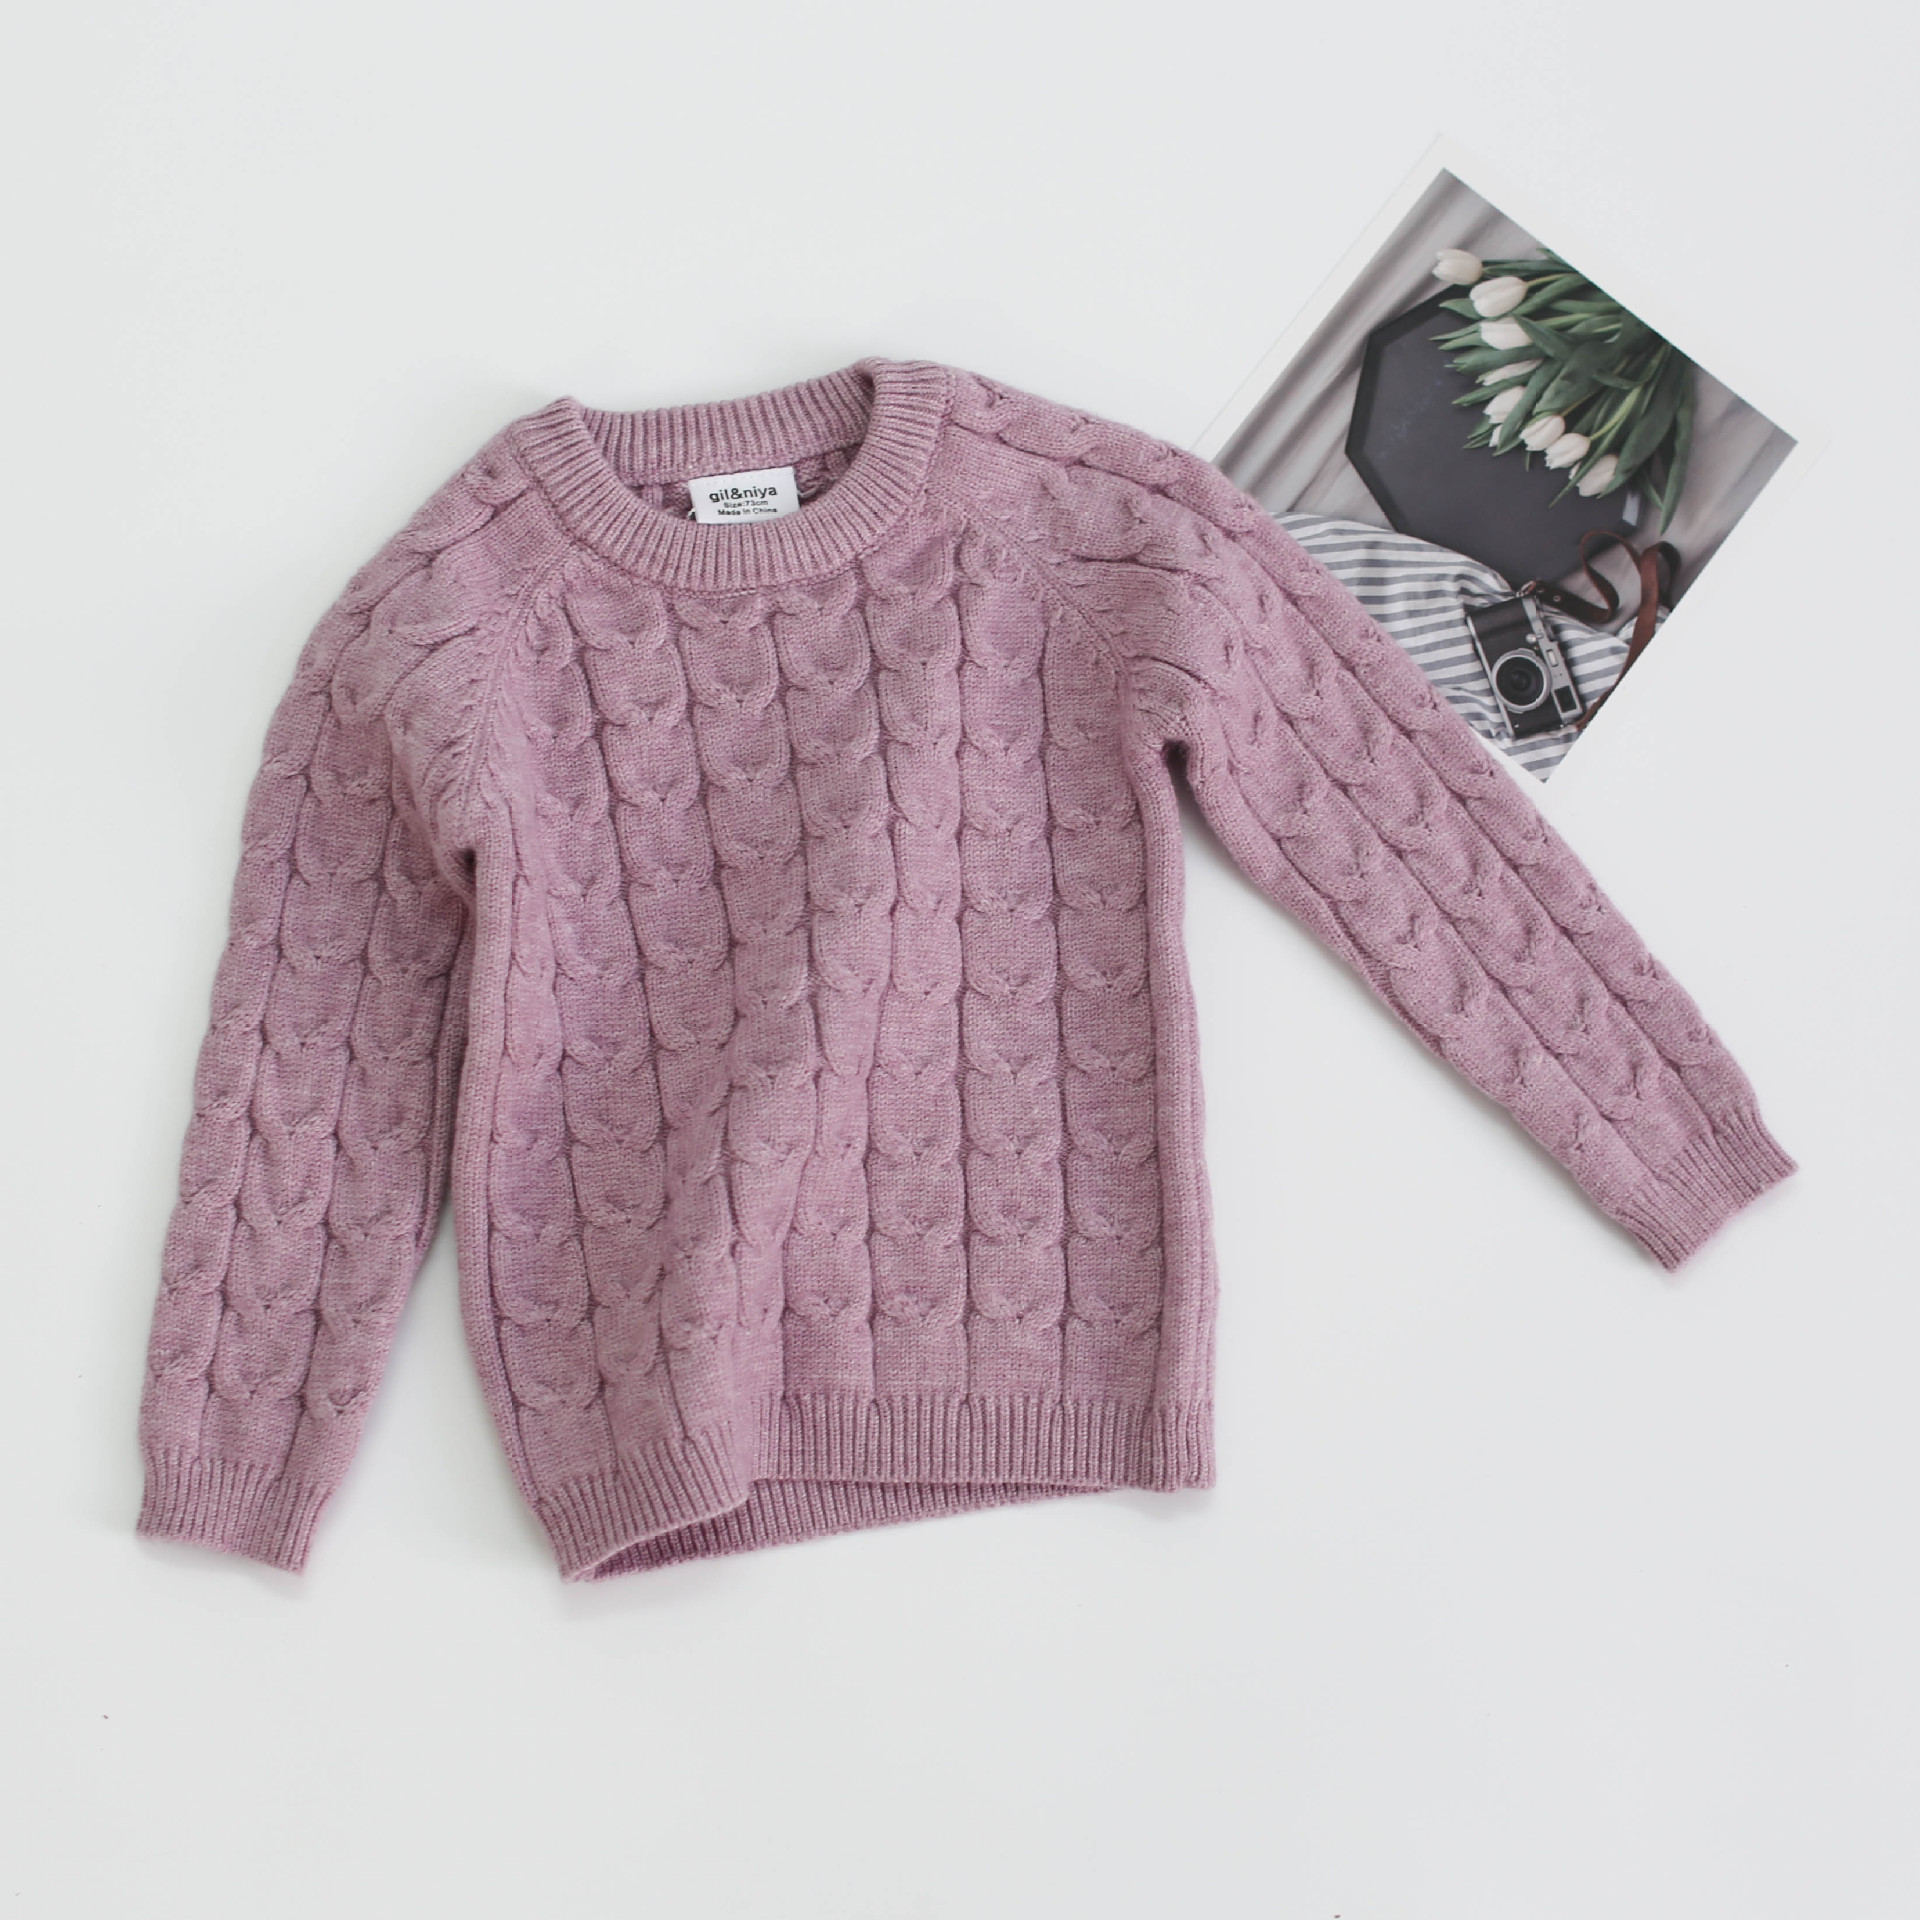 Baby Girls Boys Knit Suit toddler children Clothing Sets Winter knitting Pullover Sweater+Pants Infant kids Tracksuits pink gray 6